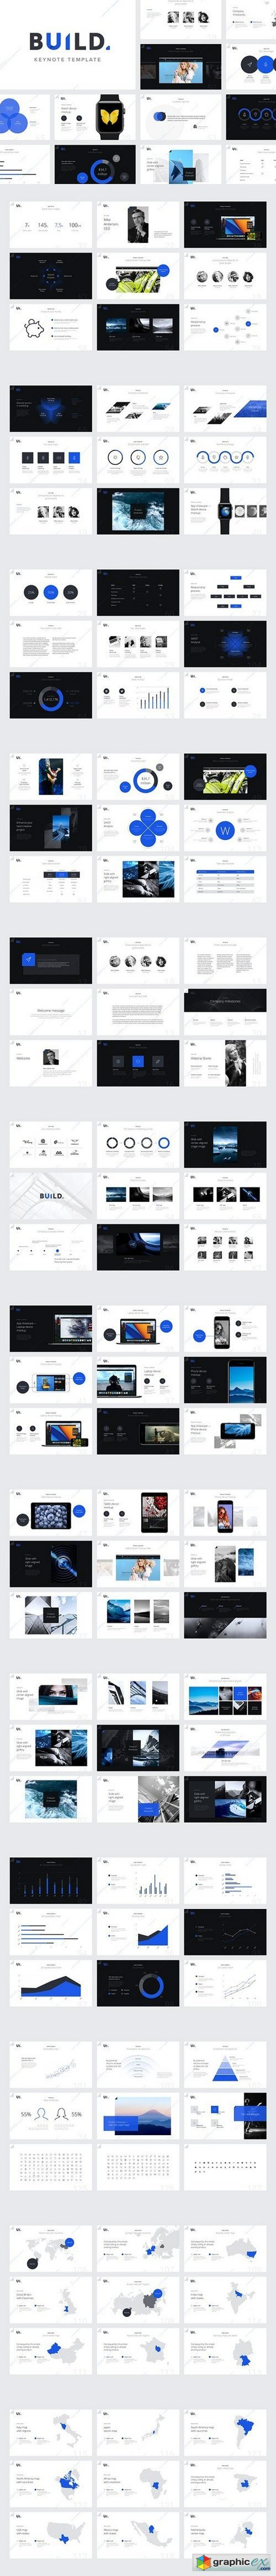 BUILD Keynote Presentation Template